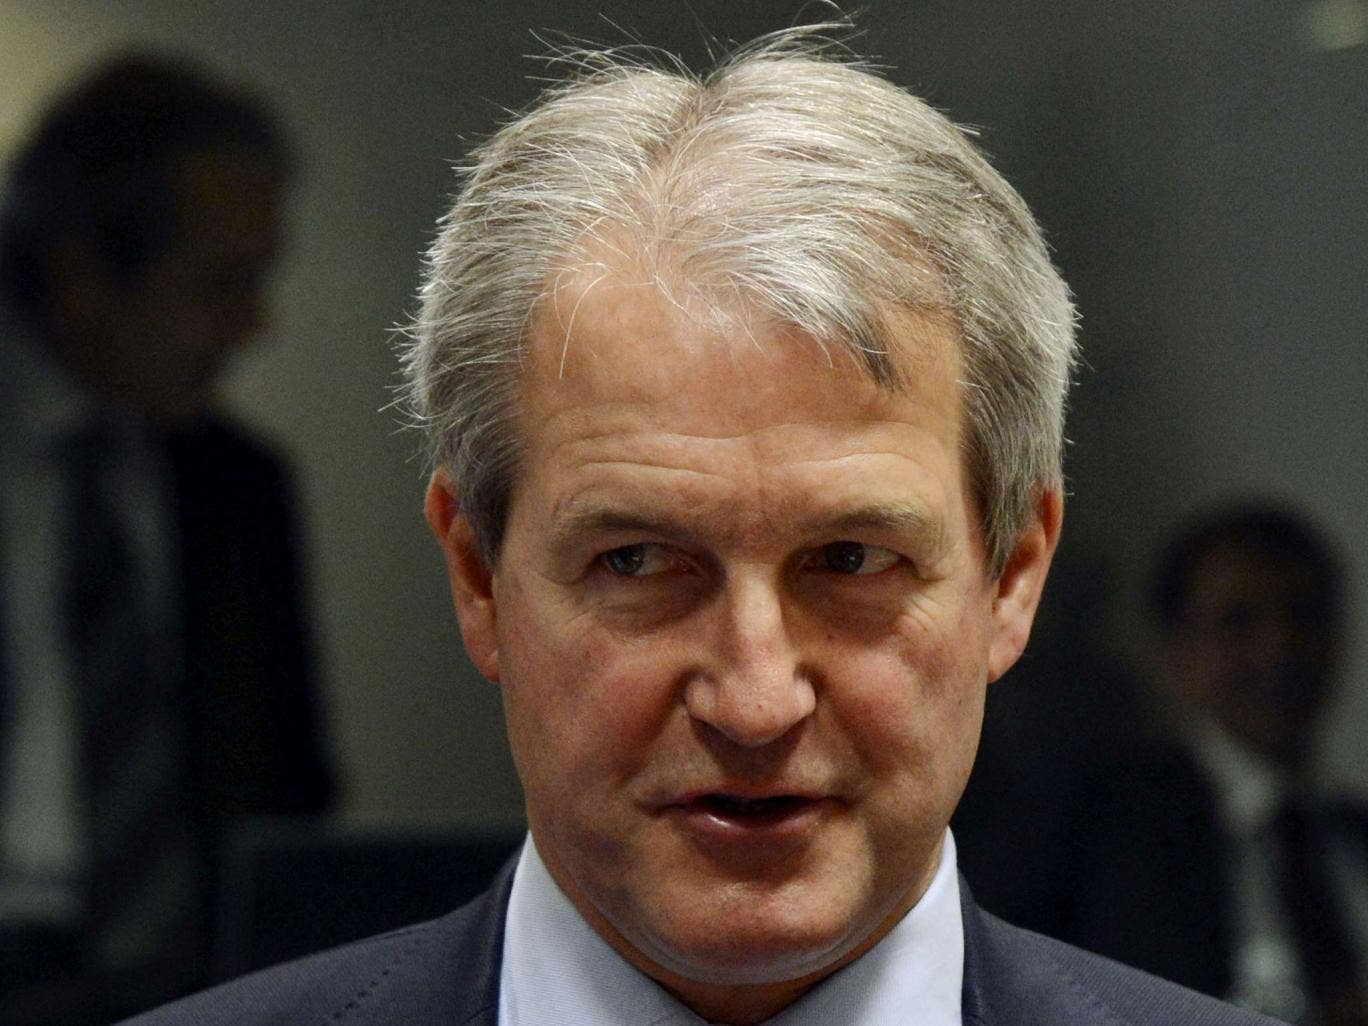 Sources at Defra told The Independent that Mr Paterson was aware of the threat to his property in Drôme